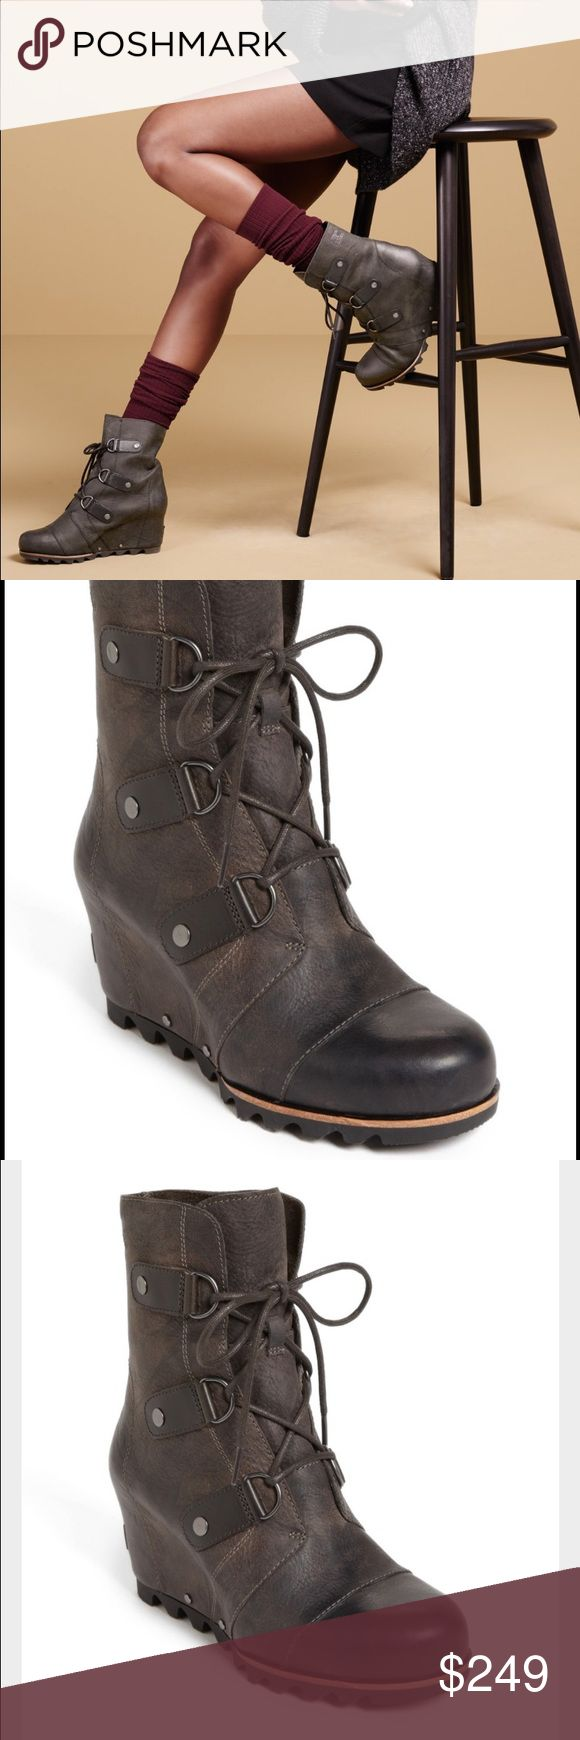 """Sorel Joan of Arc Wedge Size 10 Sorel Joan of Arc Wedge Size 10.                    """"An easy wedge modernizes a slopes-inspired boot designed with durable D-rings and a sturdy, razored-lug sole. 3 1/4"""" heel.                                                           6"""" boot shaft. Removable insole. Waterproof. Leather or textile upper/textile lining/rubber sole."""" Sorel Shoes Winter & Rain Boots"""